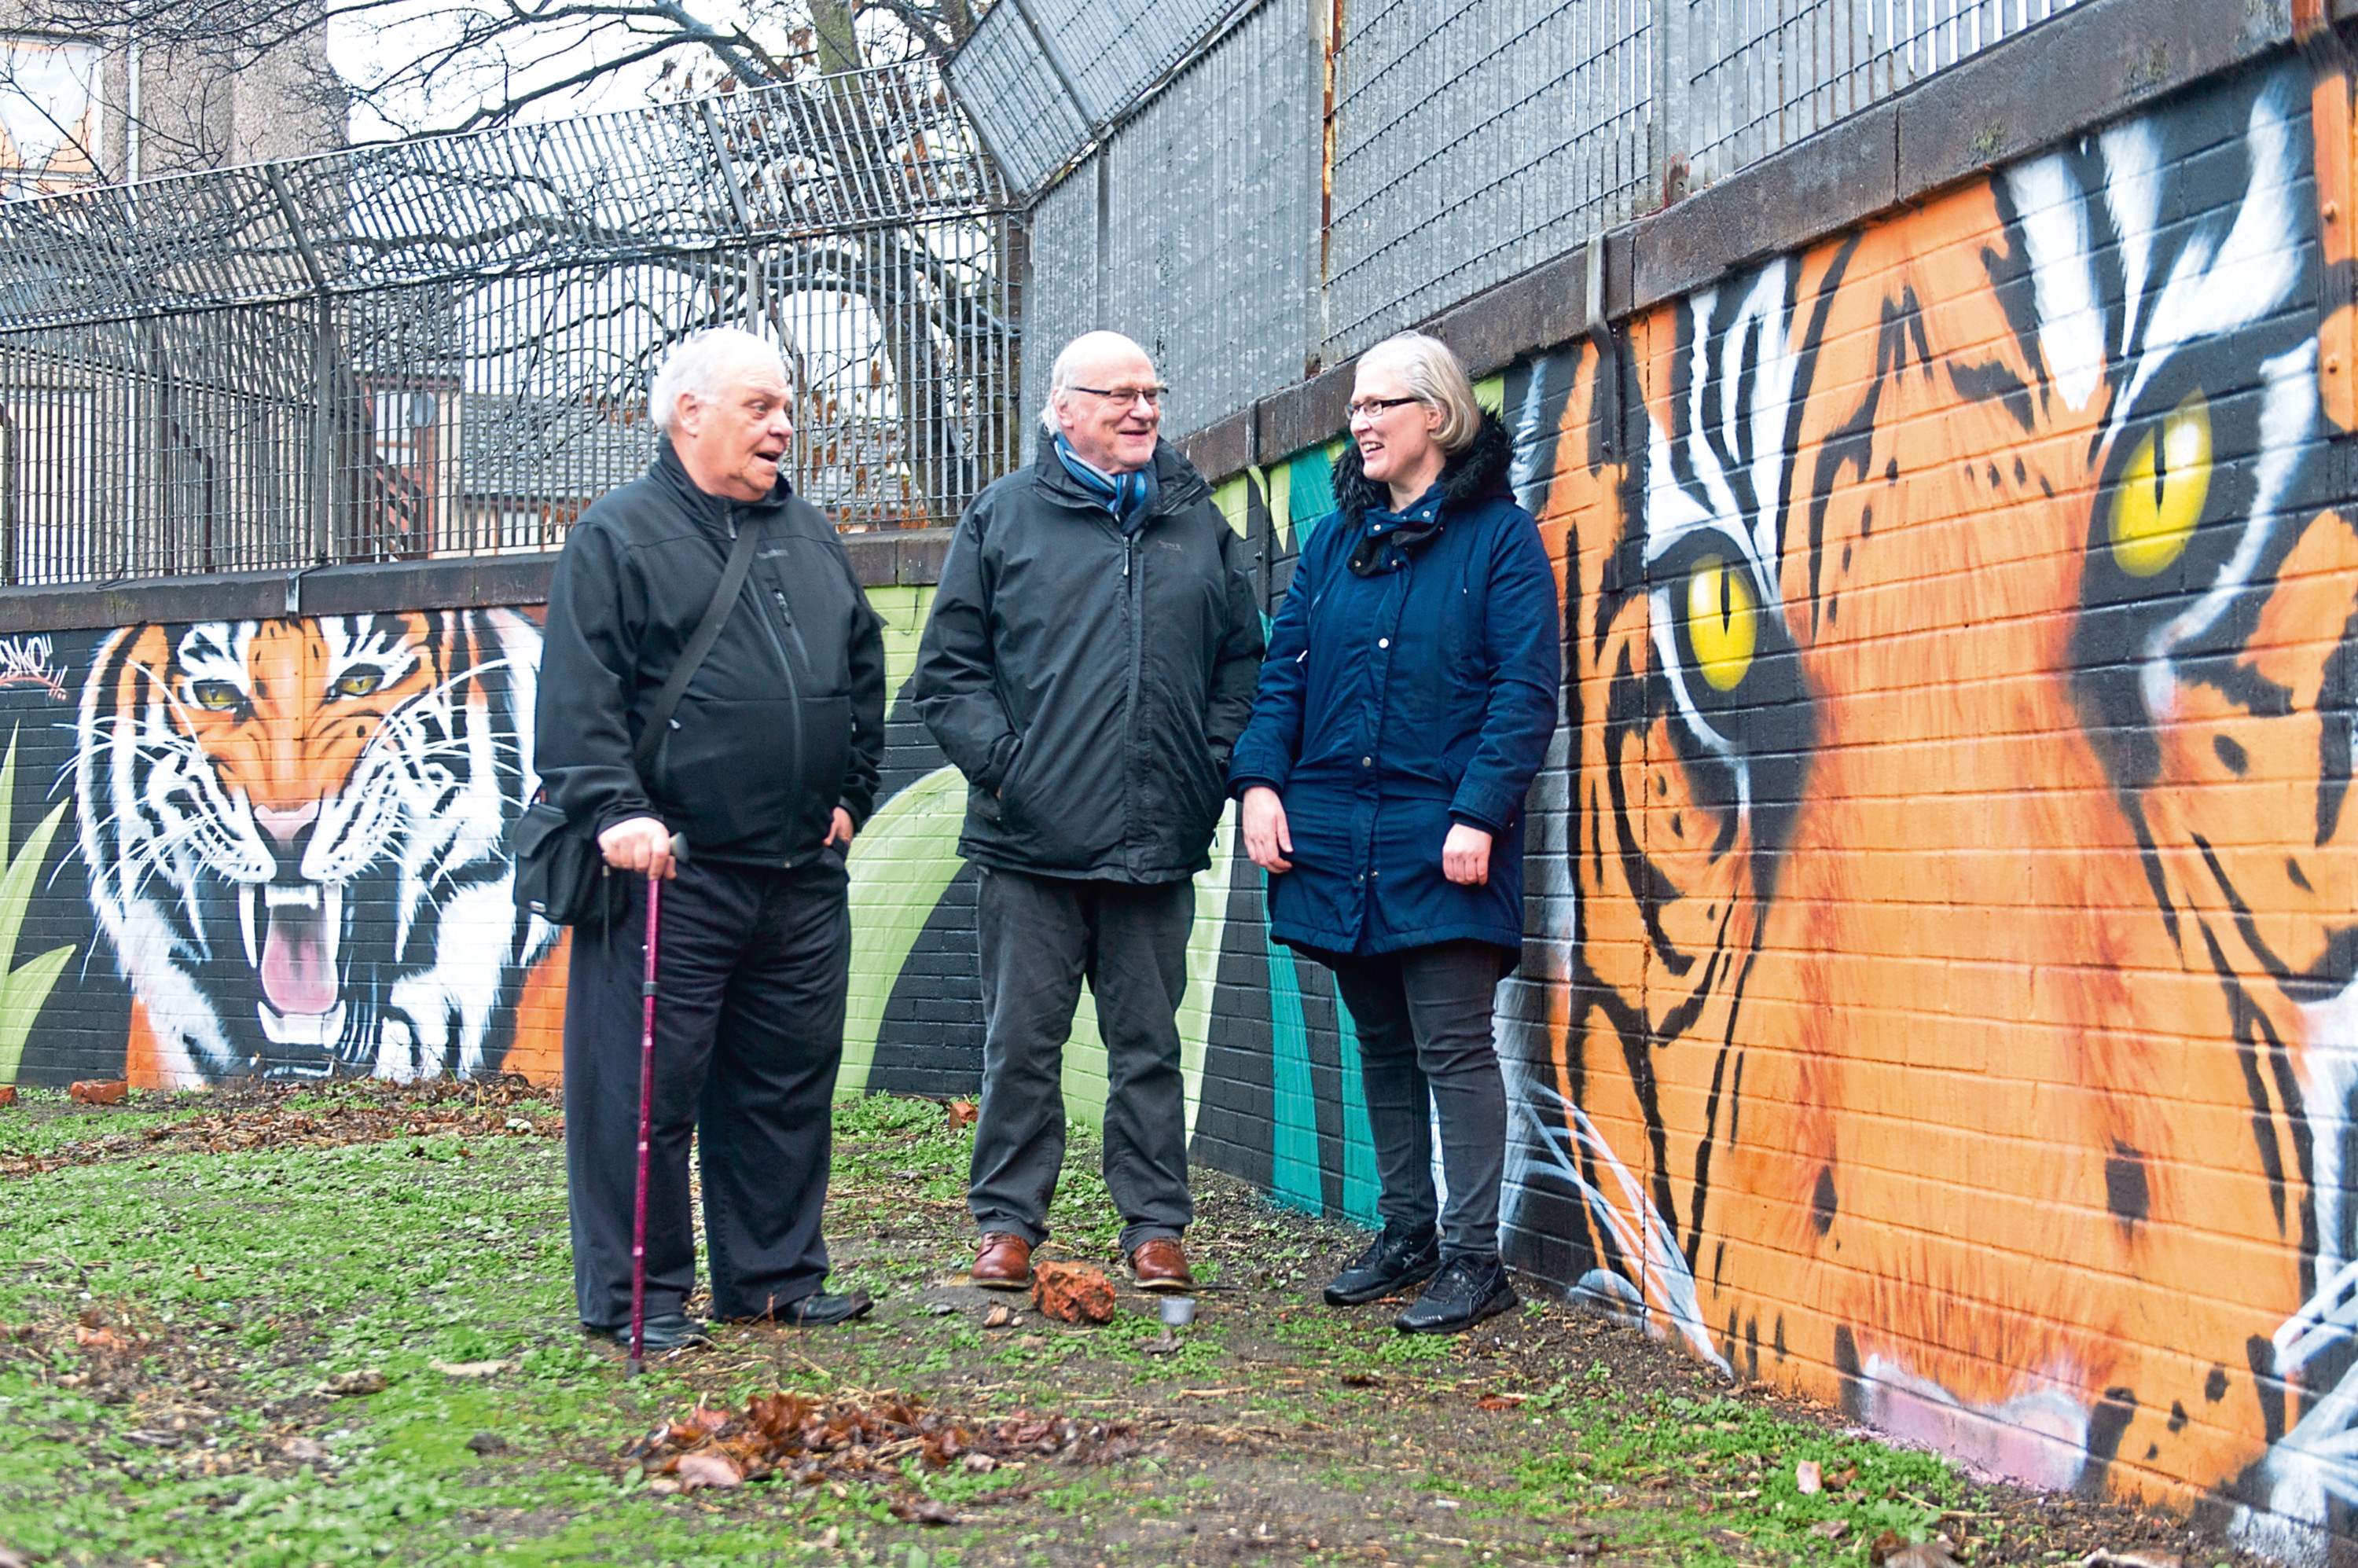 Ian Kinsey, David MacDougall and Nichola Fraser, of the Stobswell Forum committee